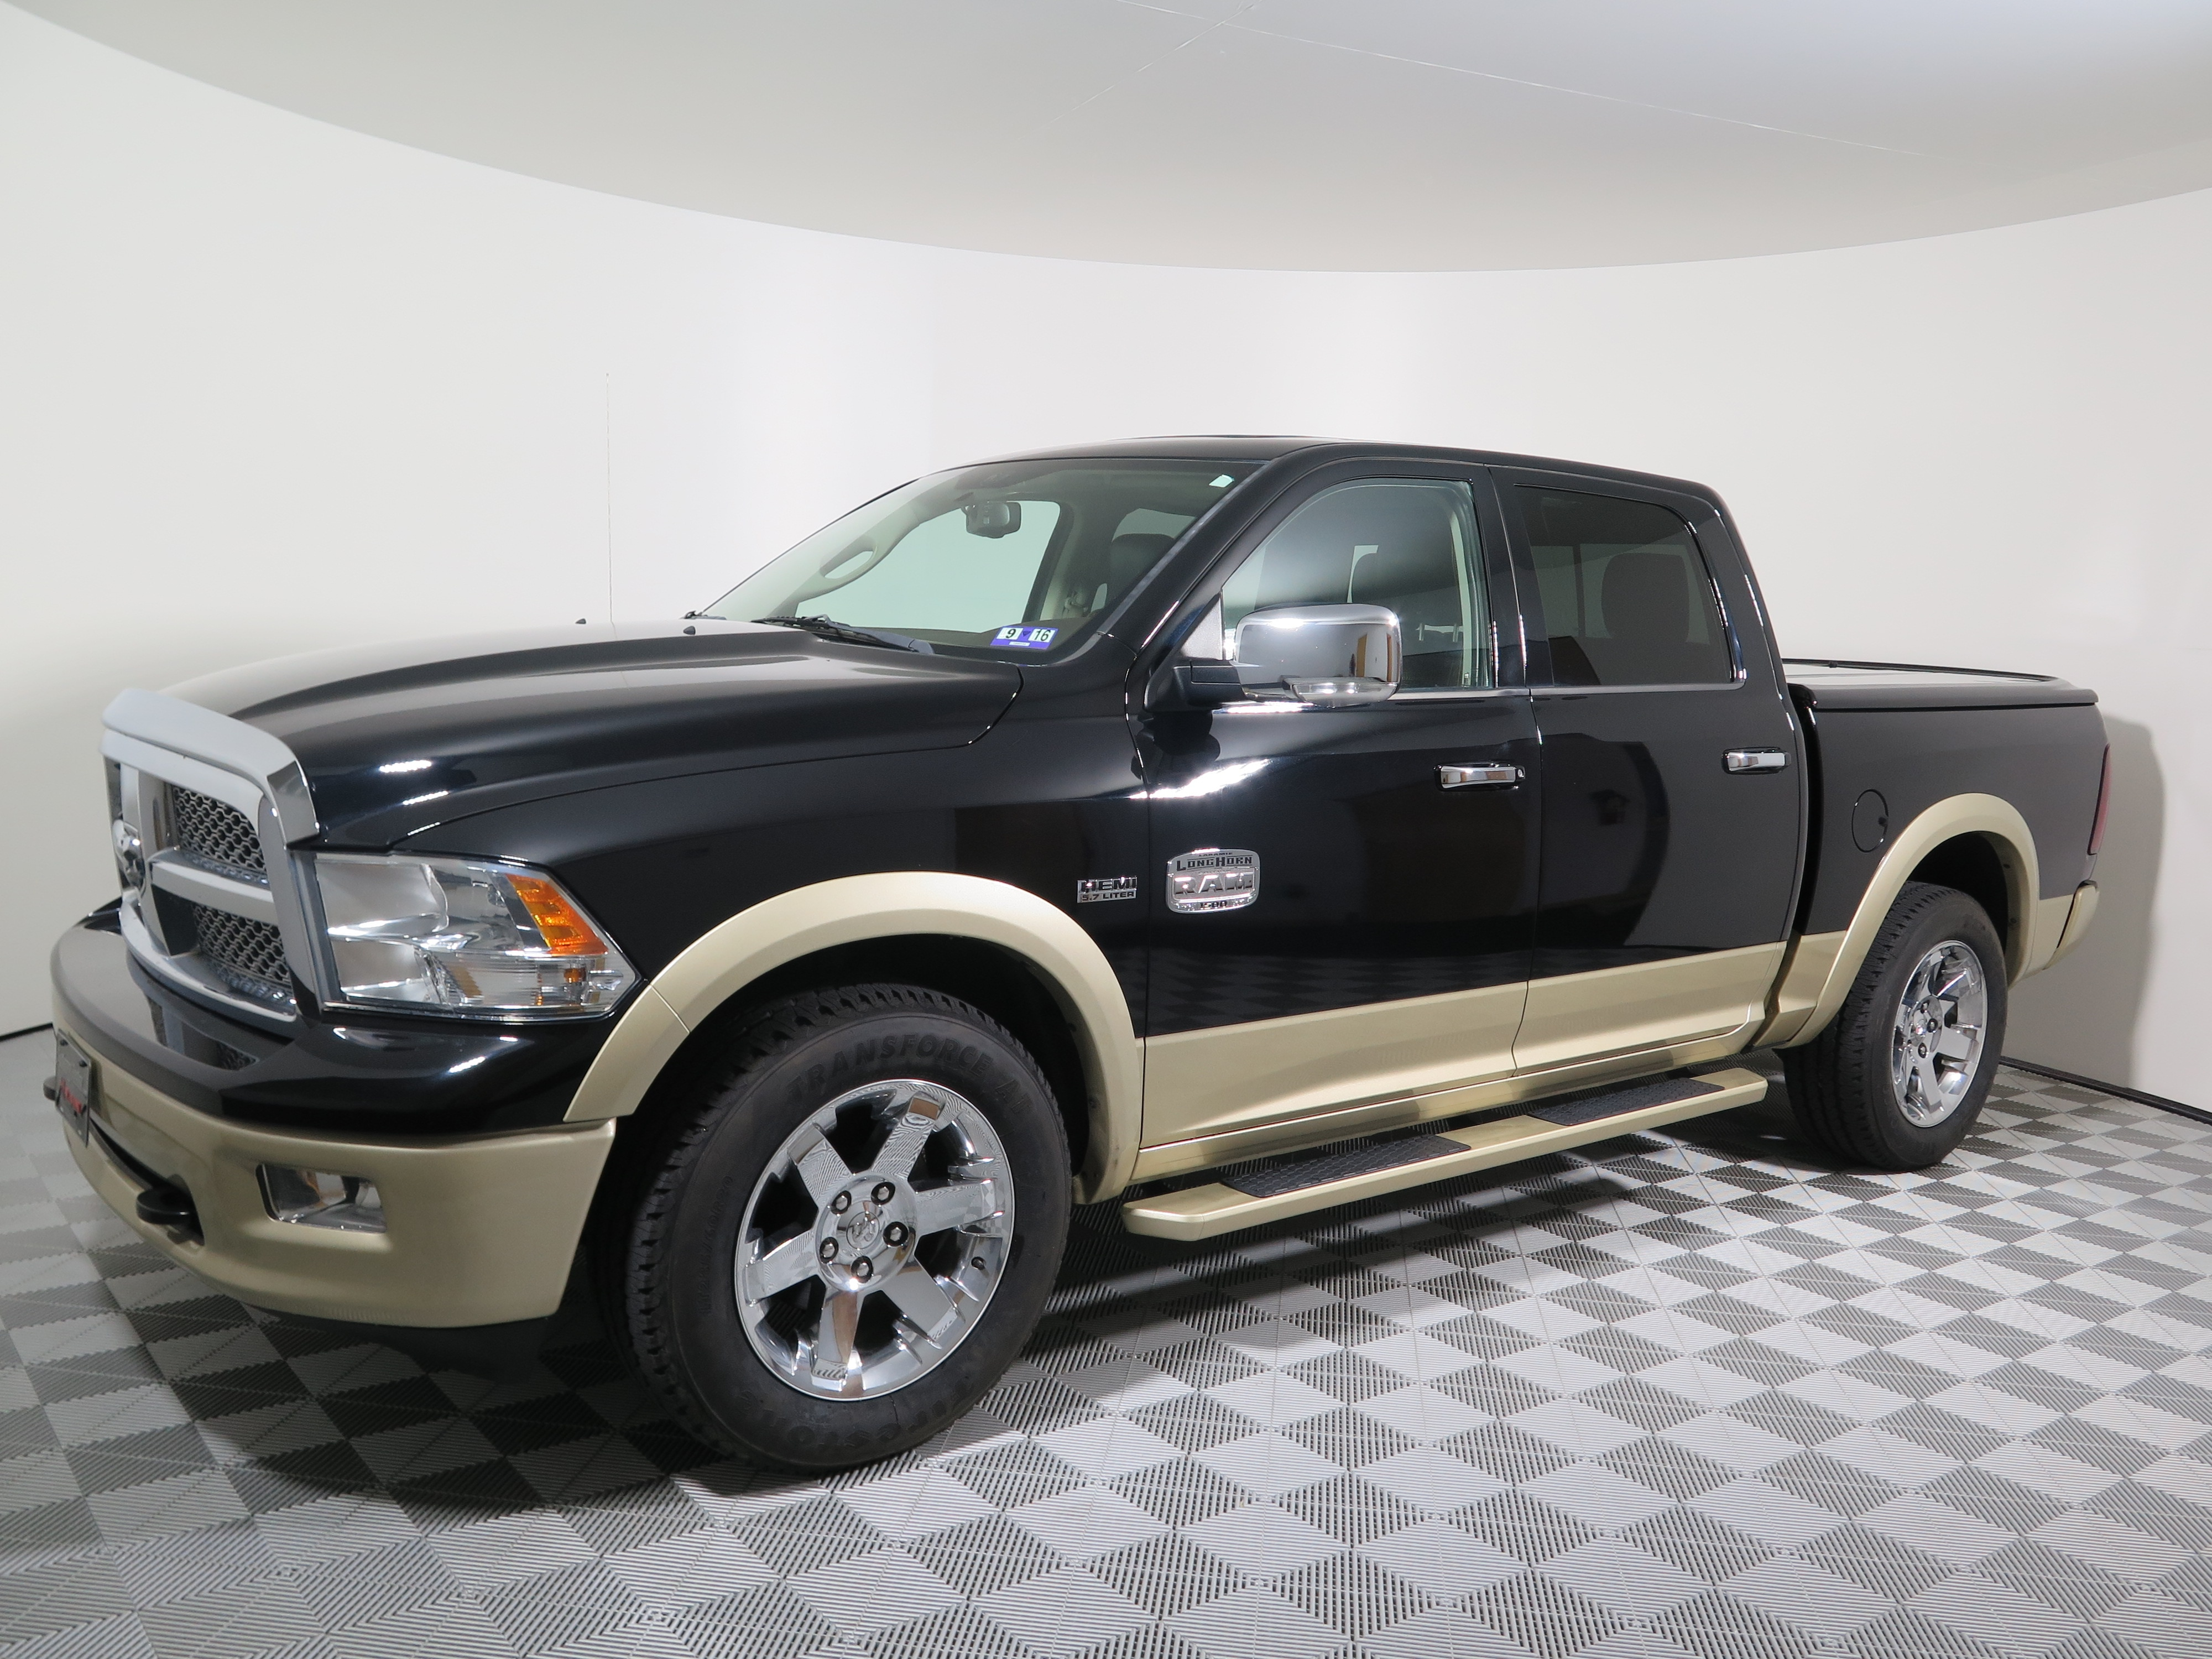 used 2012 ram 1500 laramie longhorn limited edition 4x4 crew for sale in parkersburg wv. Black Bedroom Furniture Sets. Home Design Ideas